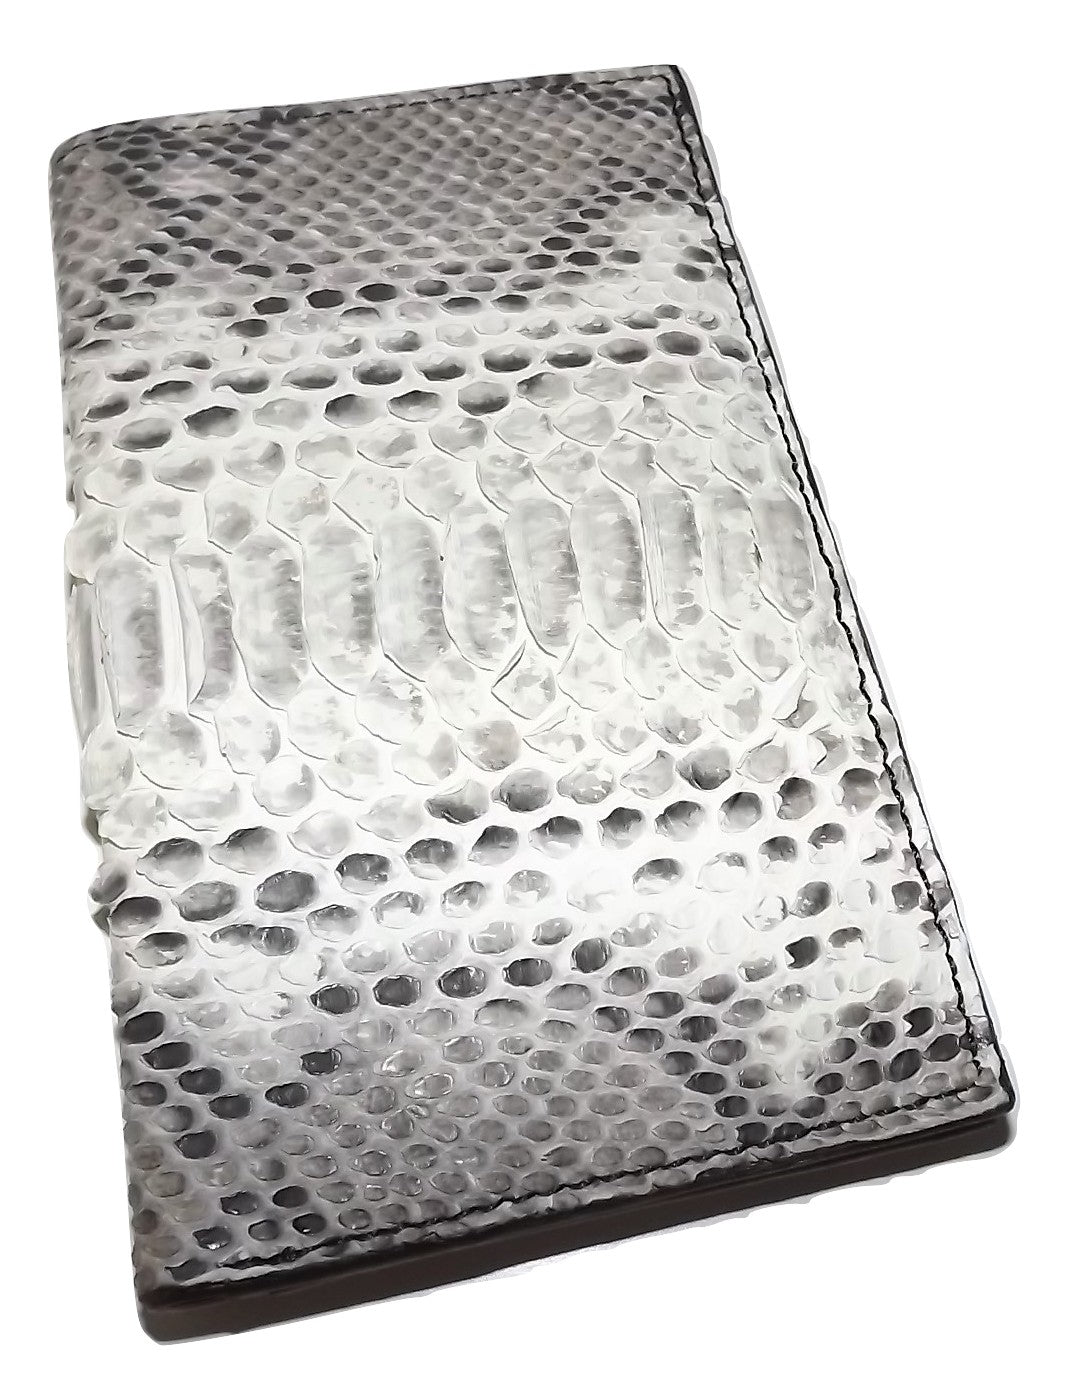 Baglioni Italia Python Breast Pocket Wallet White Multi